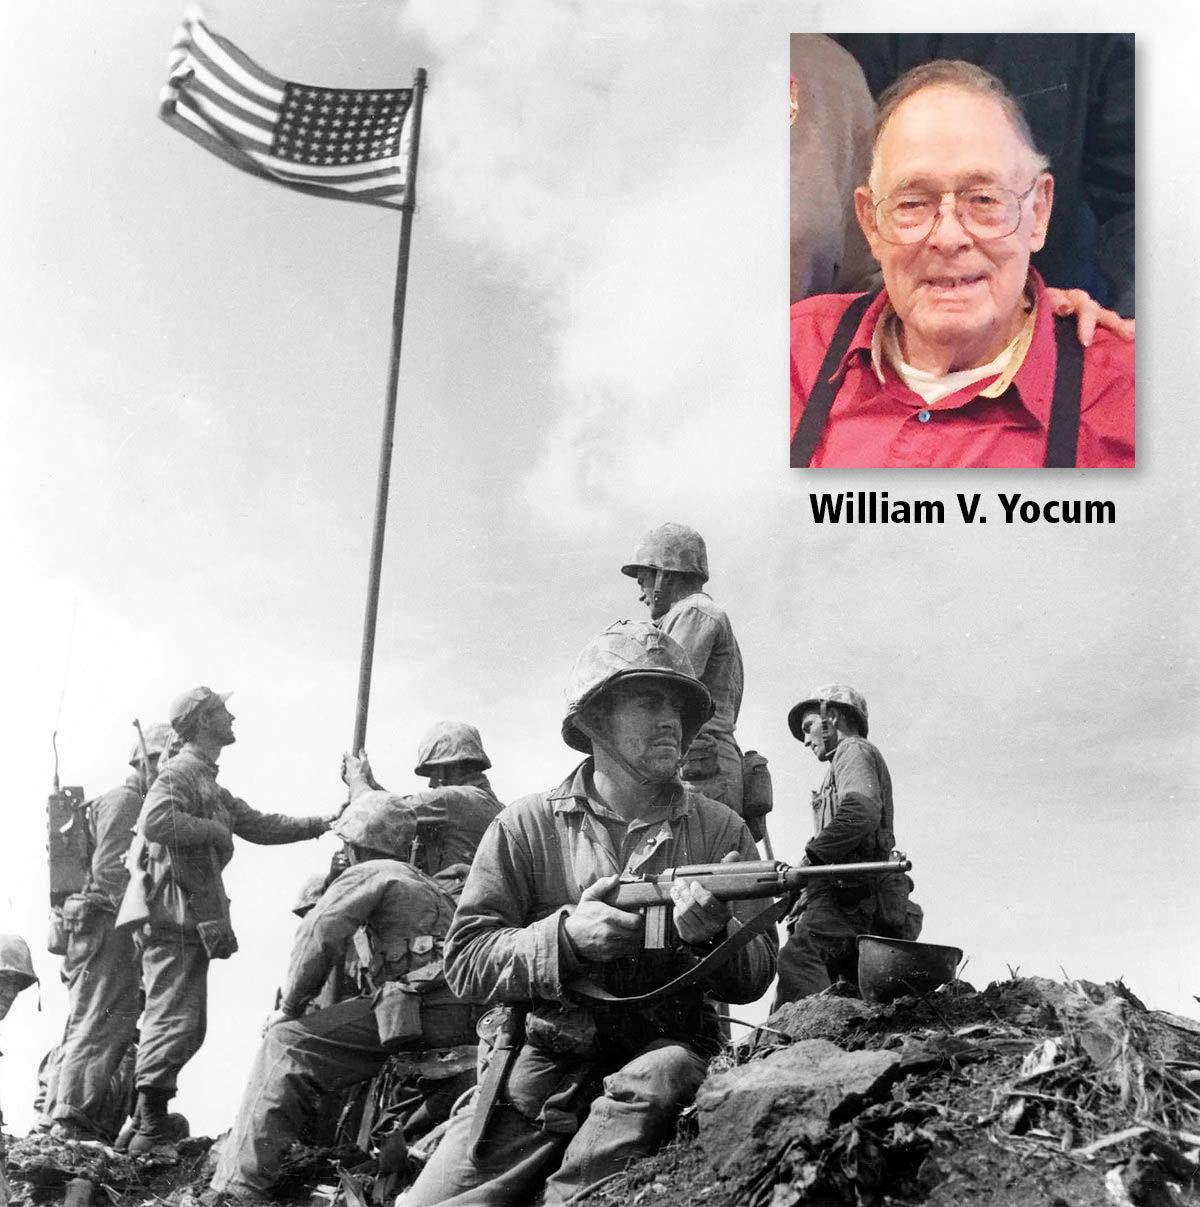 75 Years After Victory, Local Man Still a 'National Treasure'